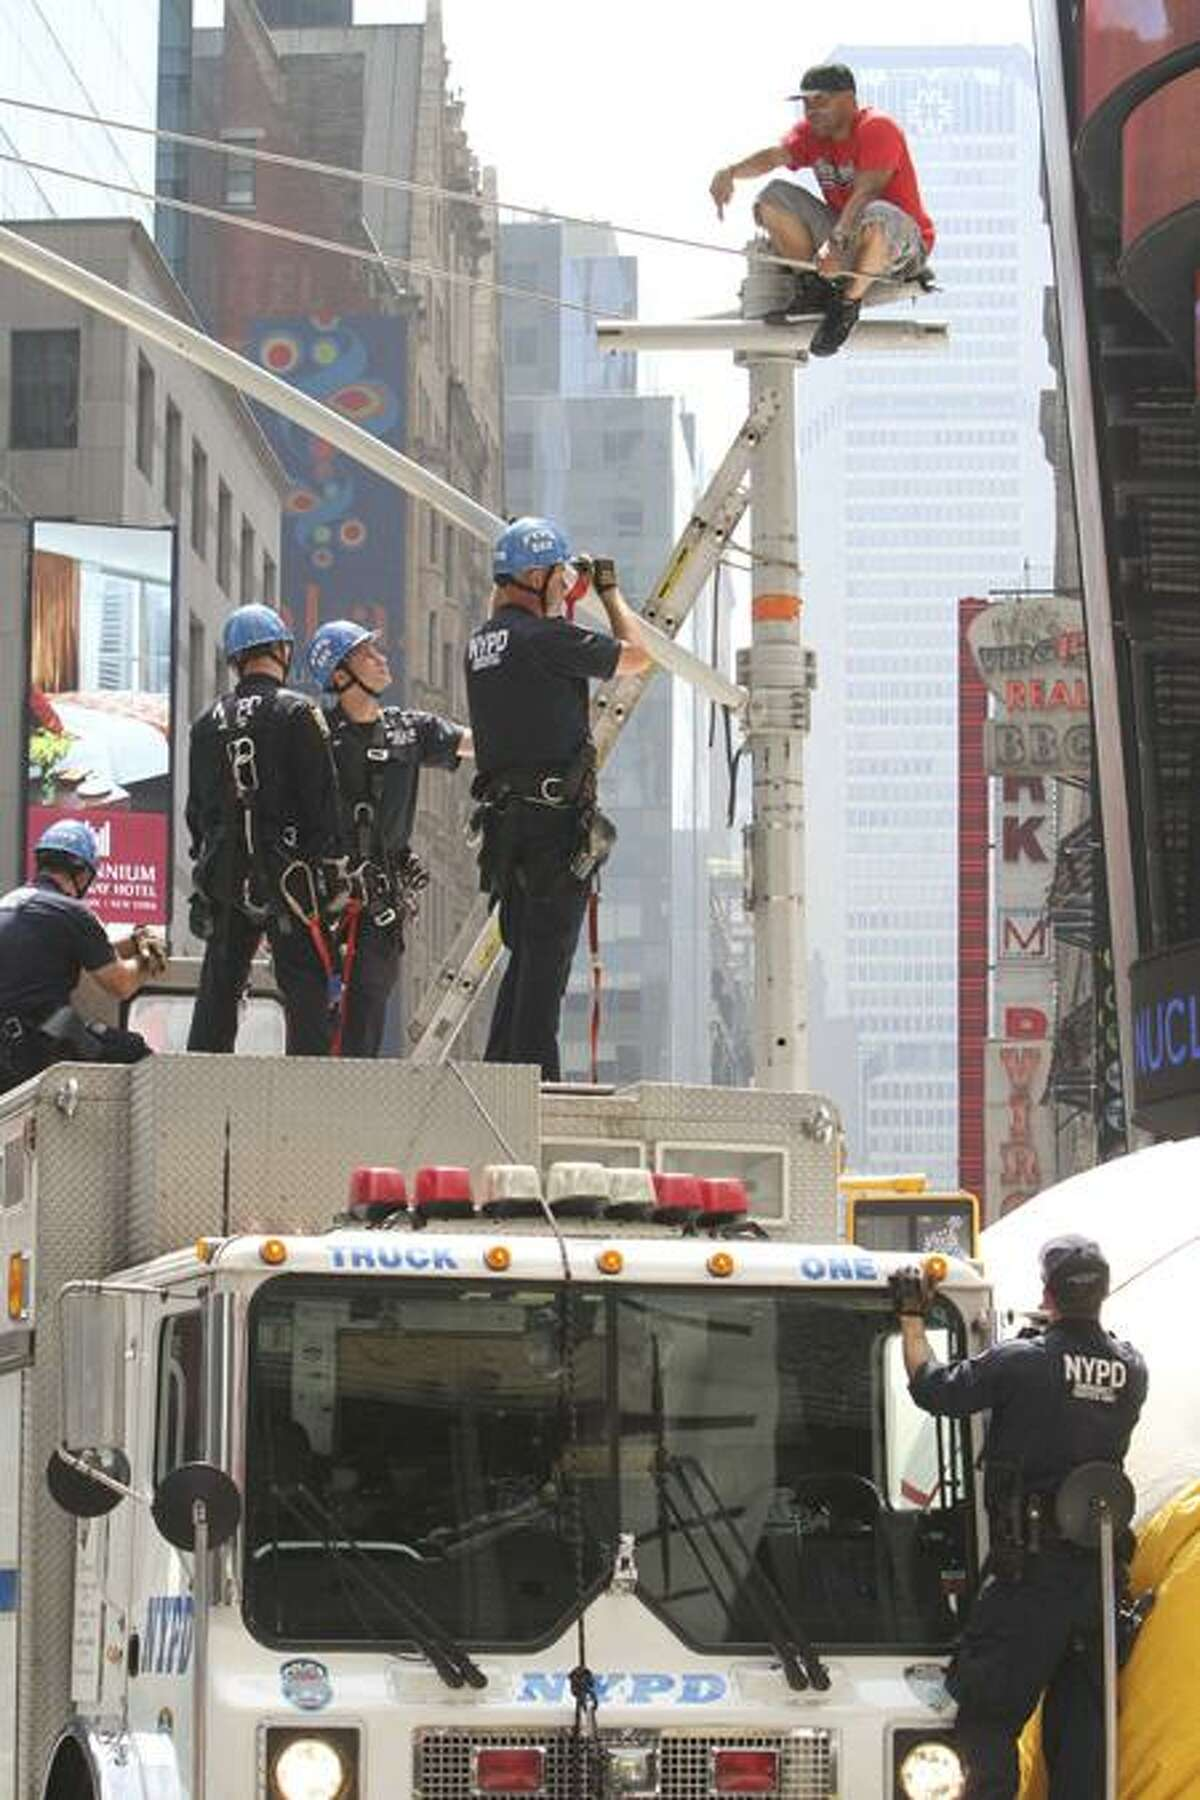 New York City police officers negotiate with an unidentified man who climbed a traffic light pole in Times Square Tuesday. Associated Press